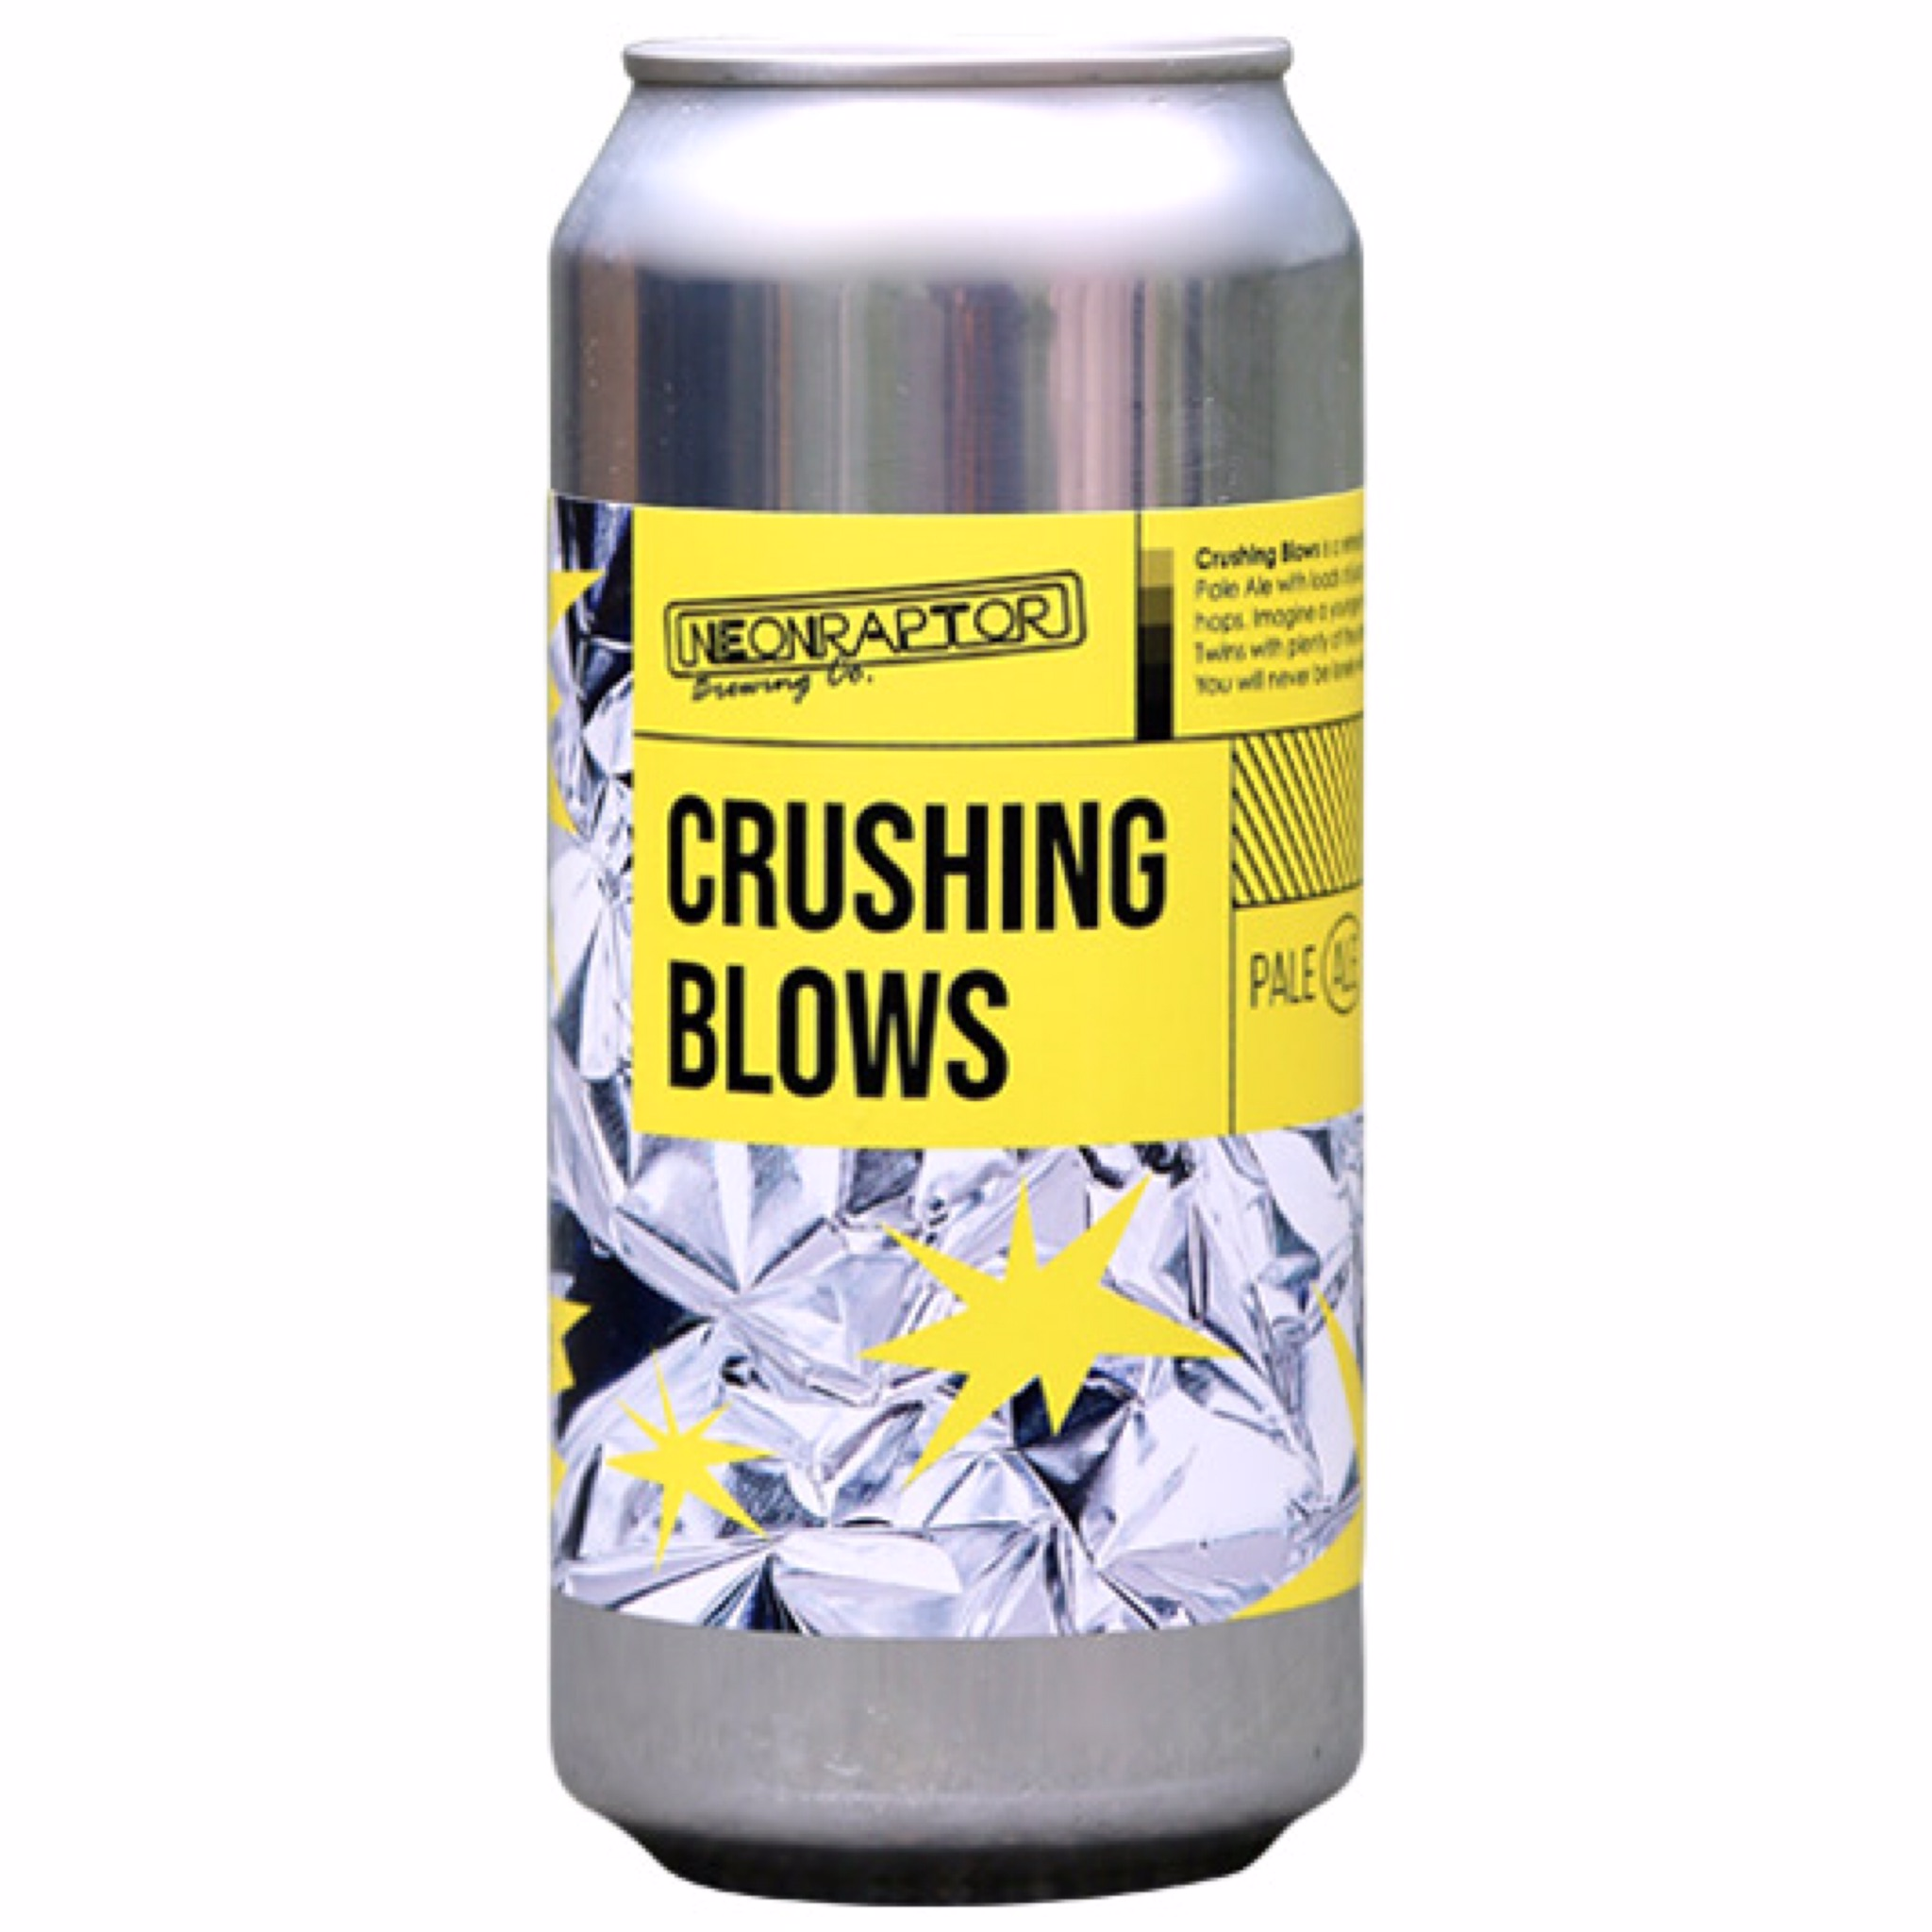 Crushing Blows - Pale Ale 3.8% 440ml NeonRaptor Brewing Co